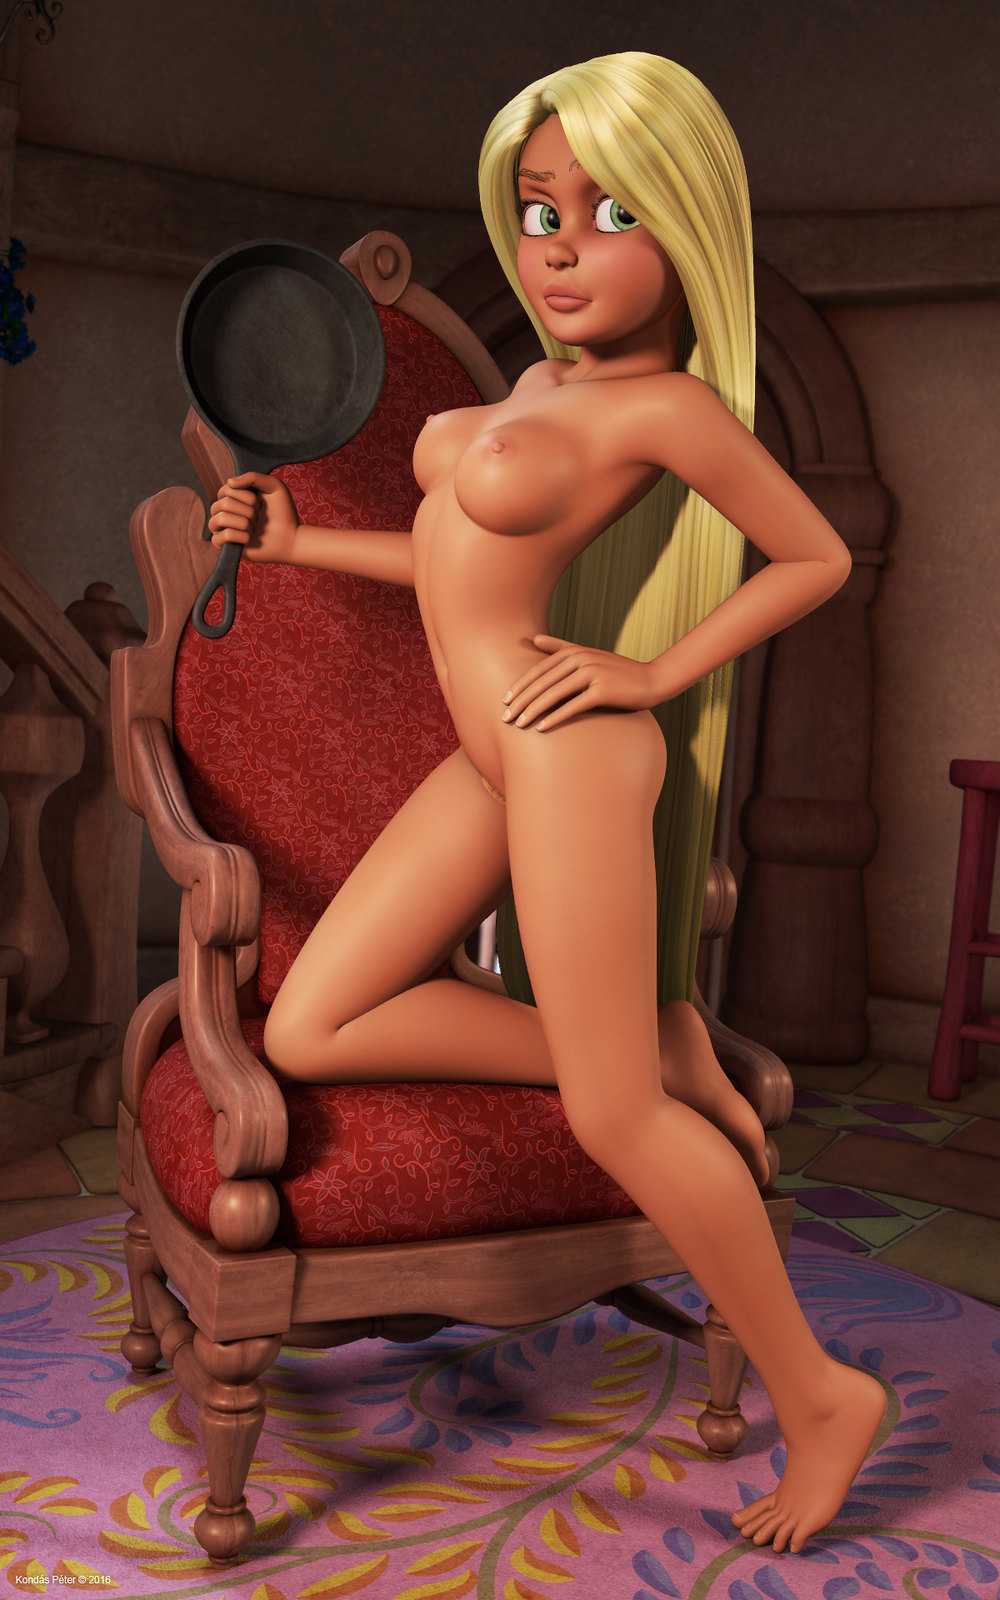 tangled-girl-nude